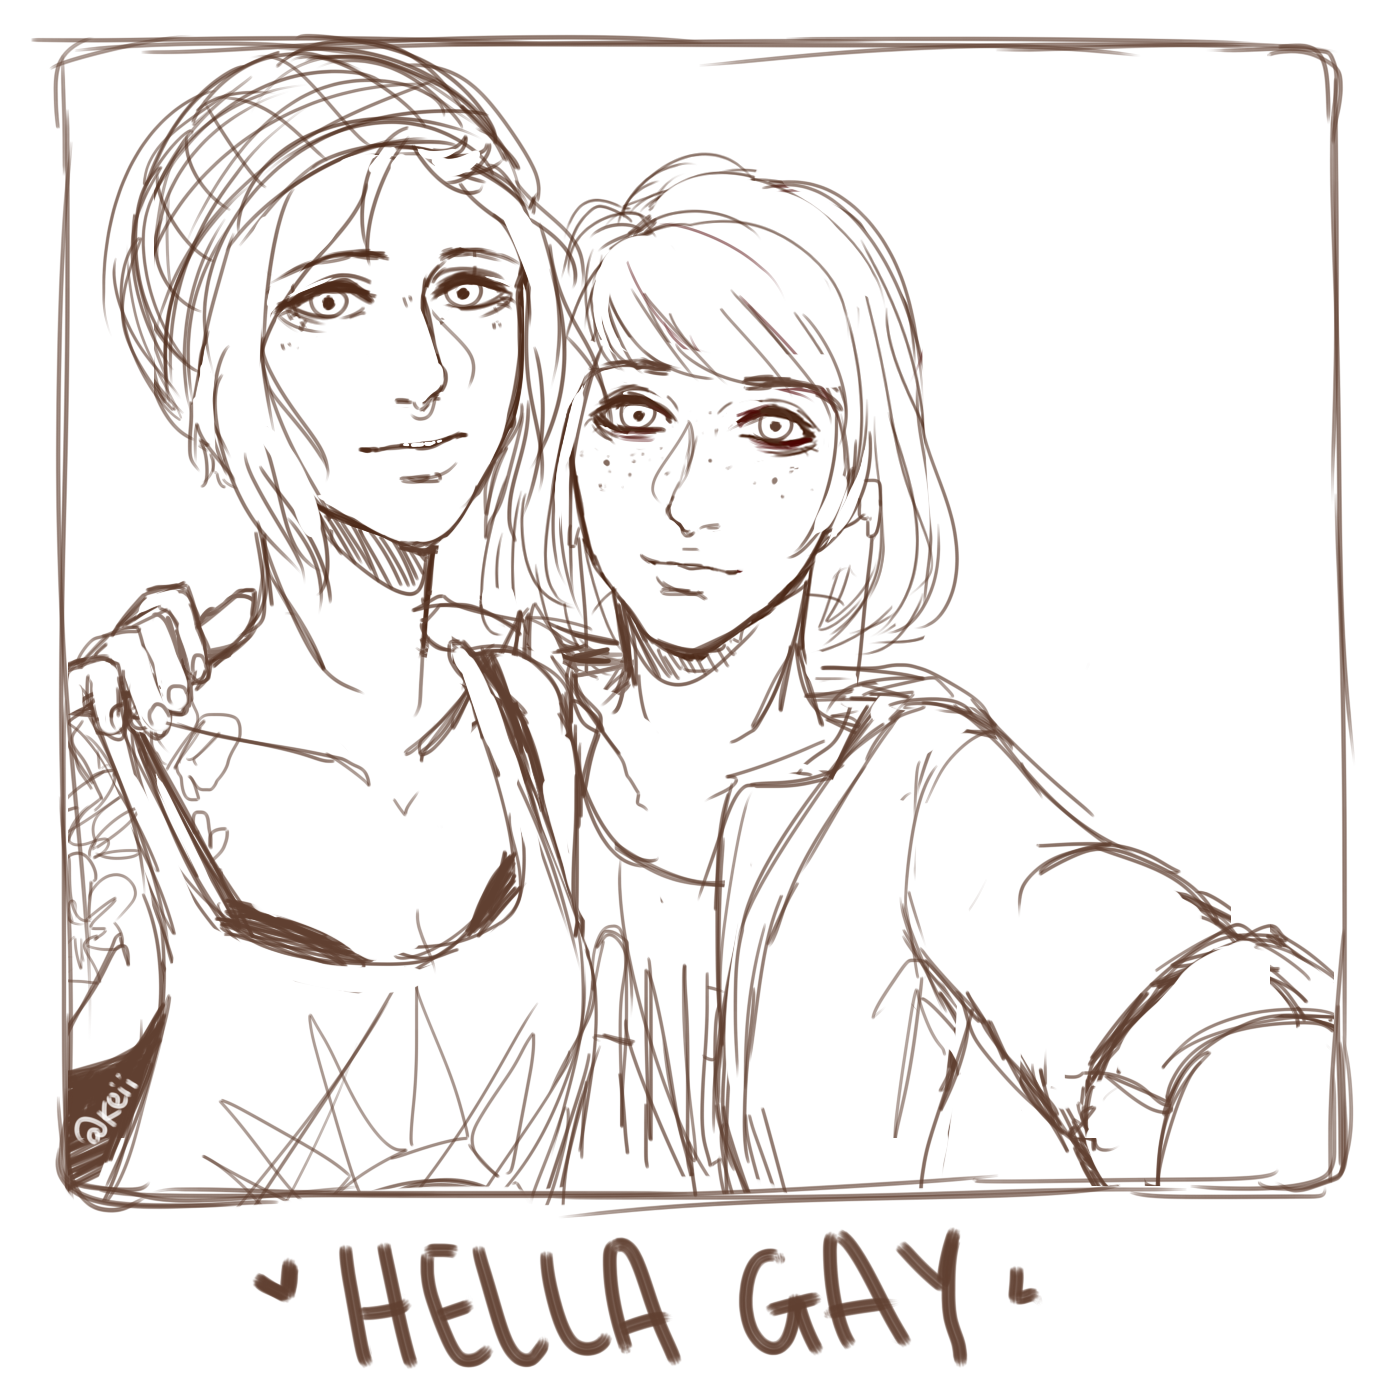 life is strange hella gay